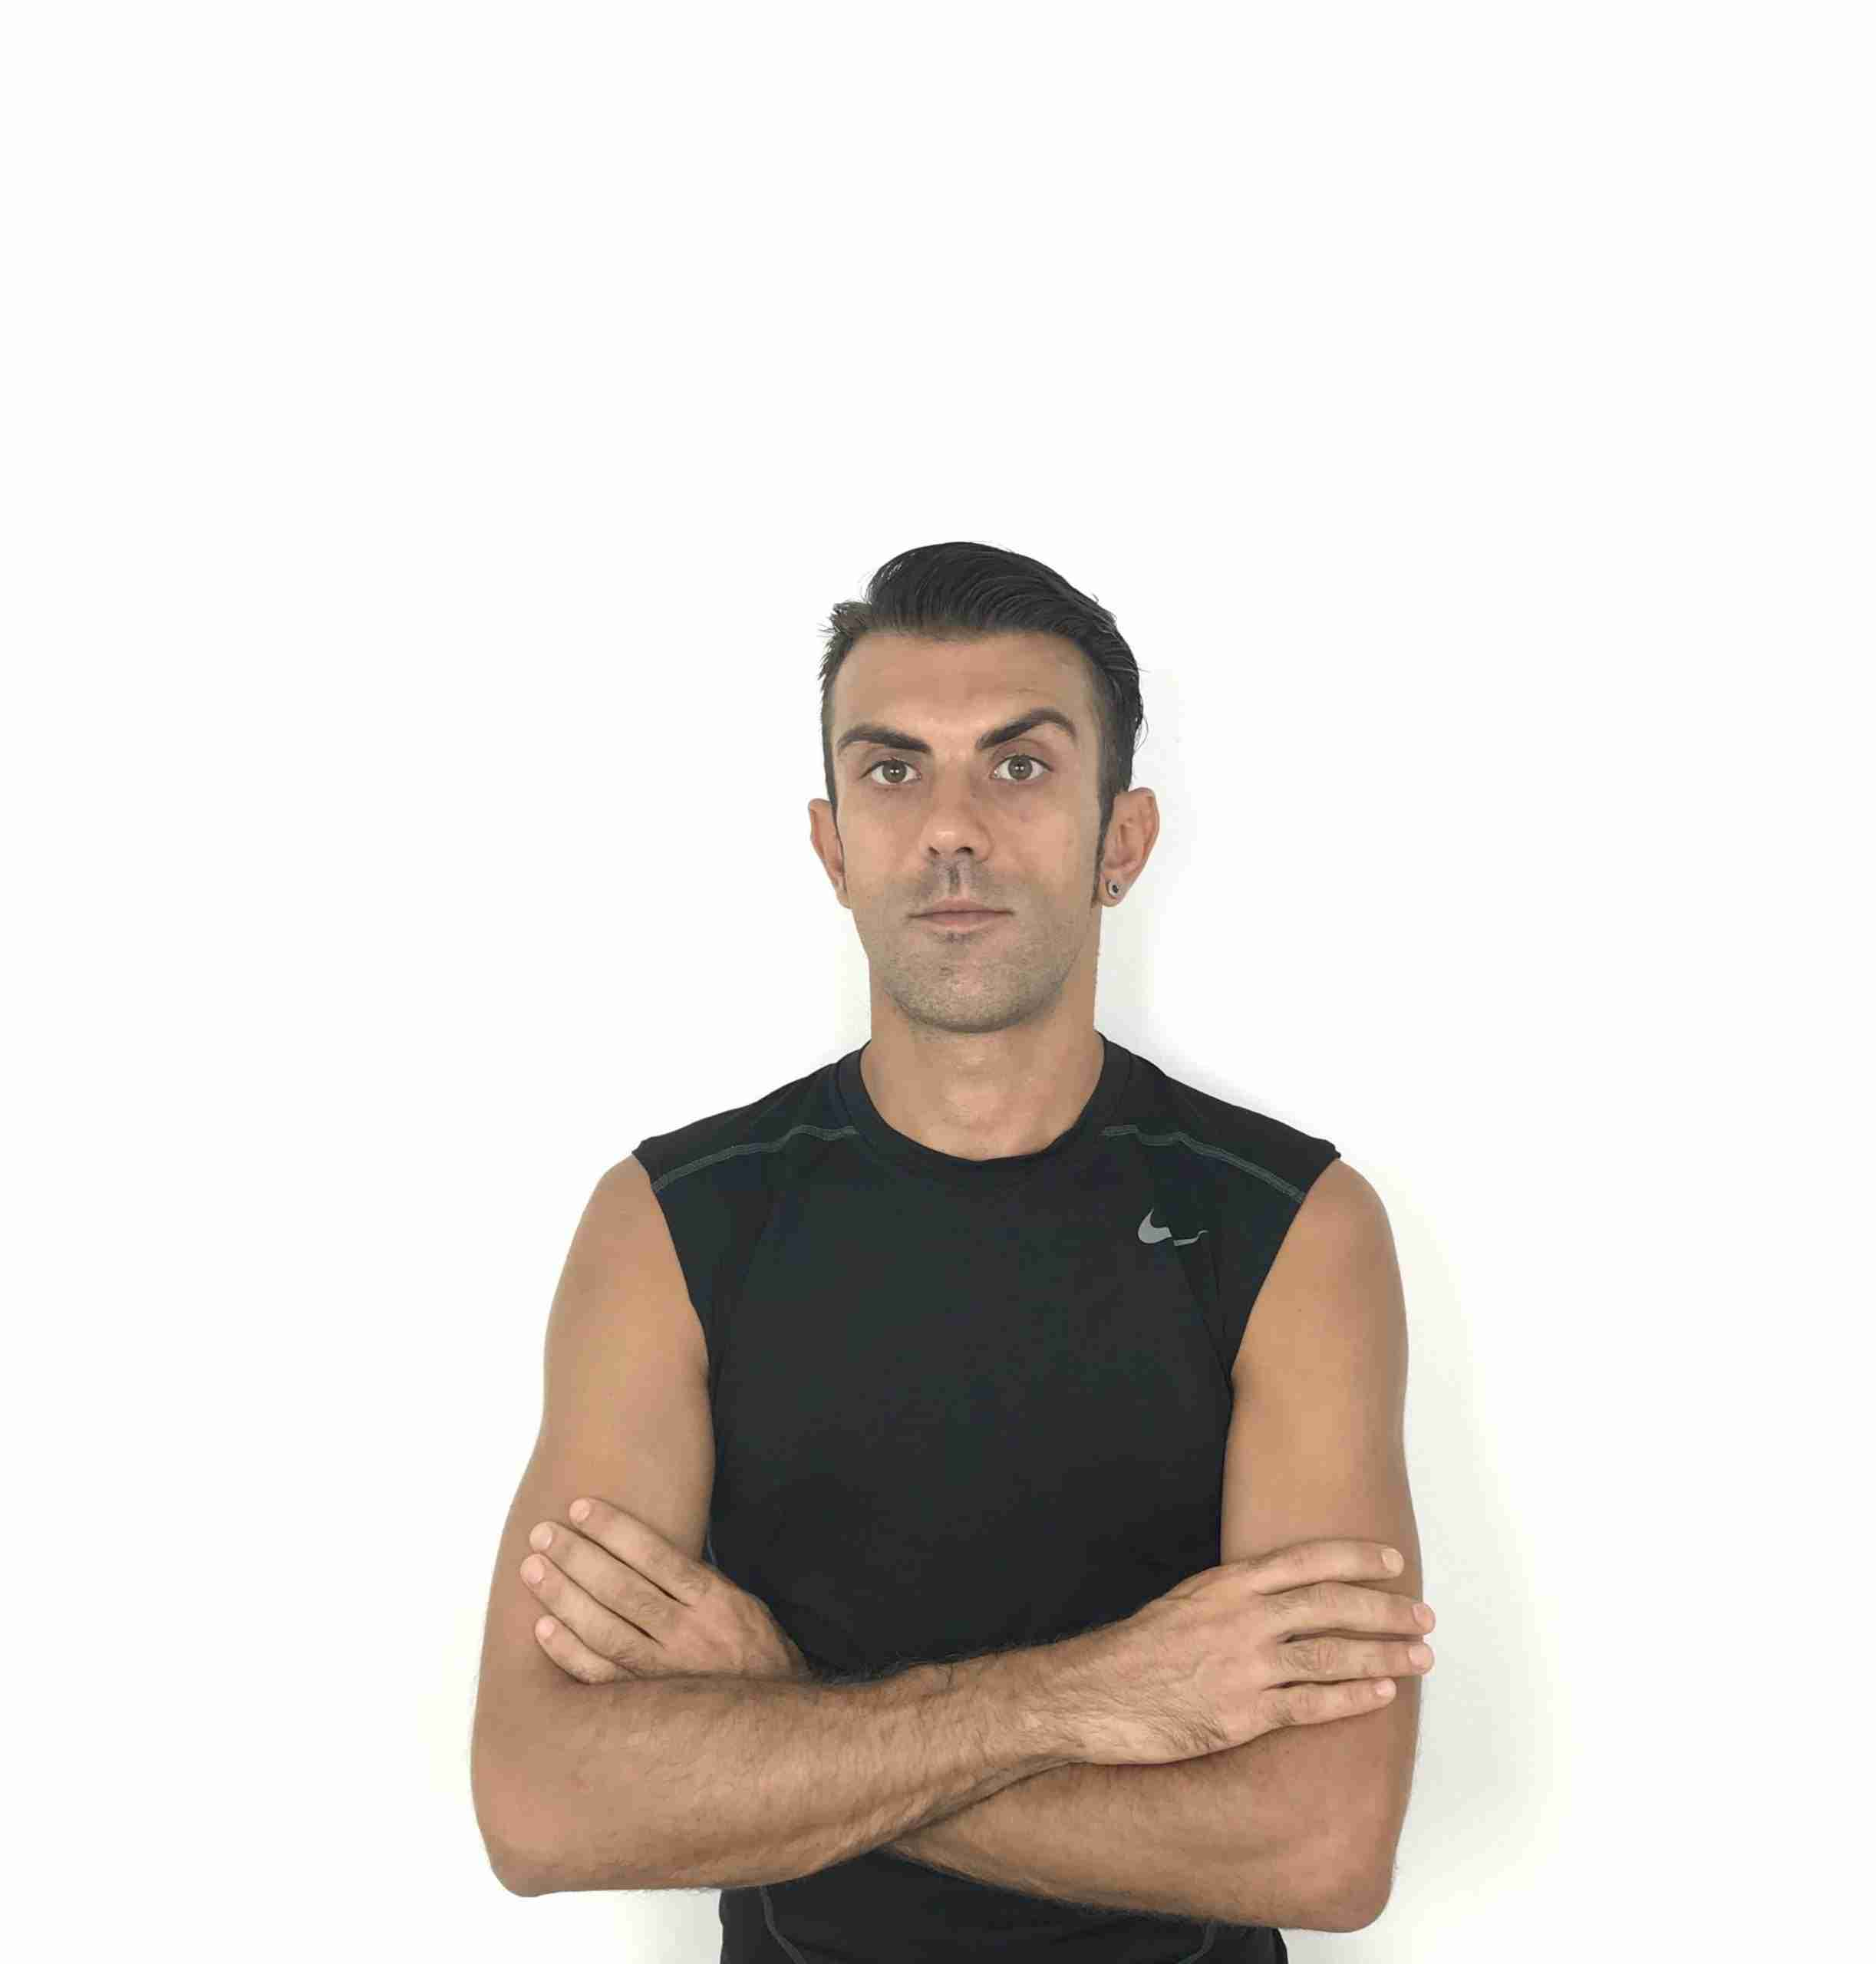 Paolo Vegan Personal Trainer